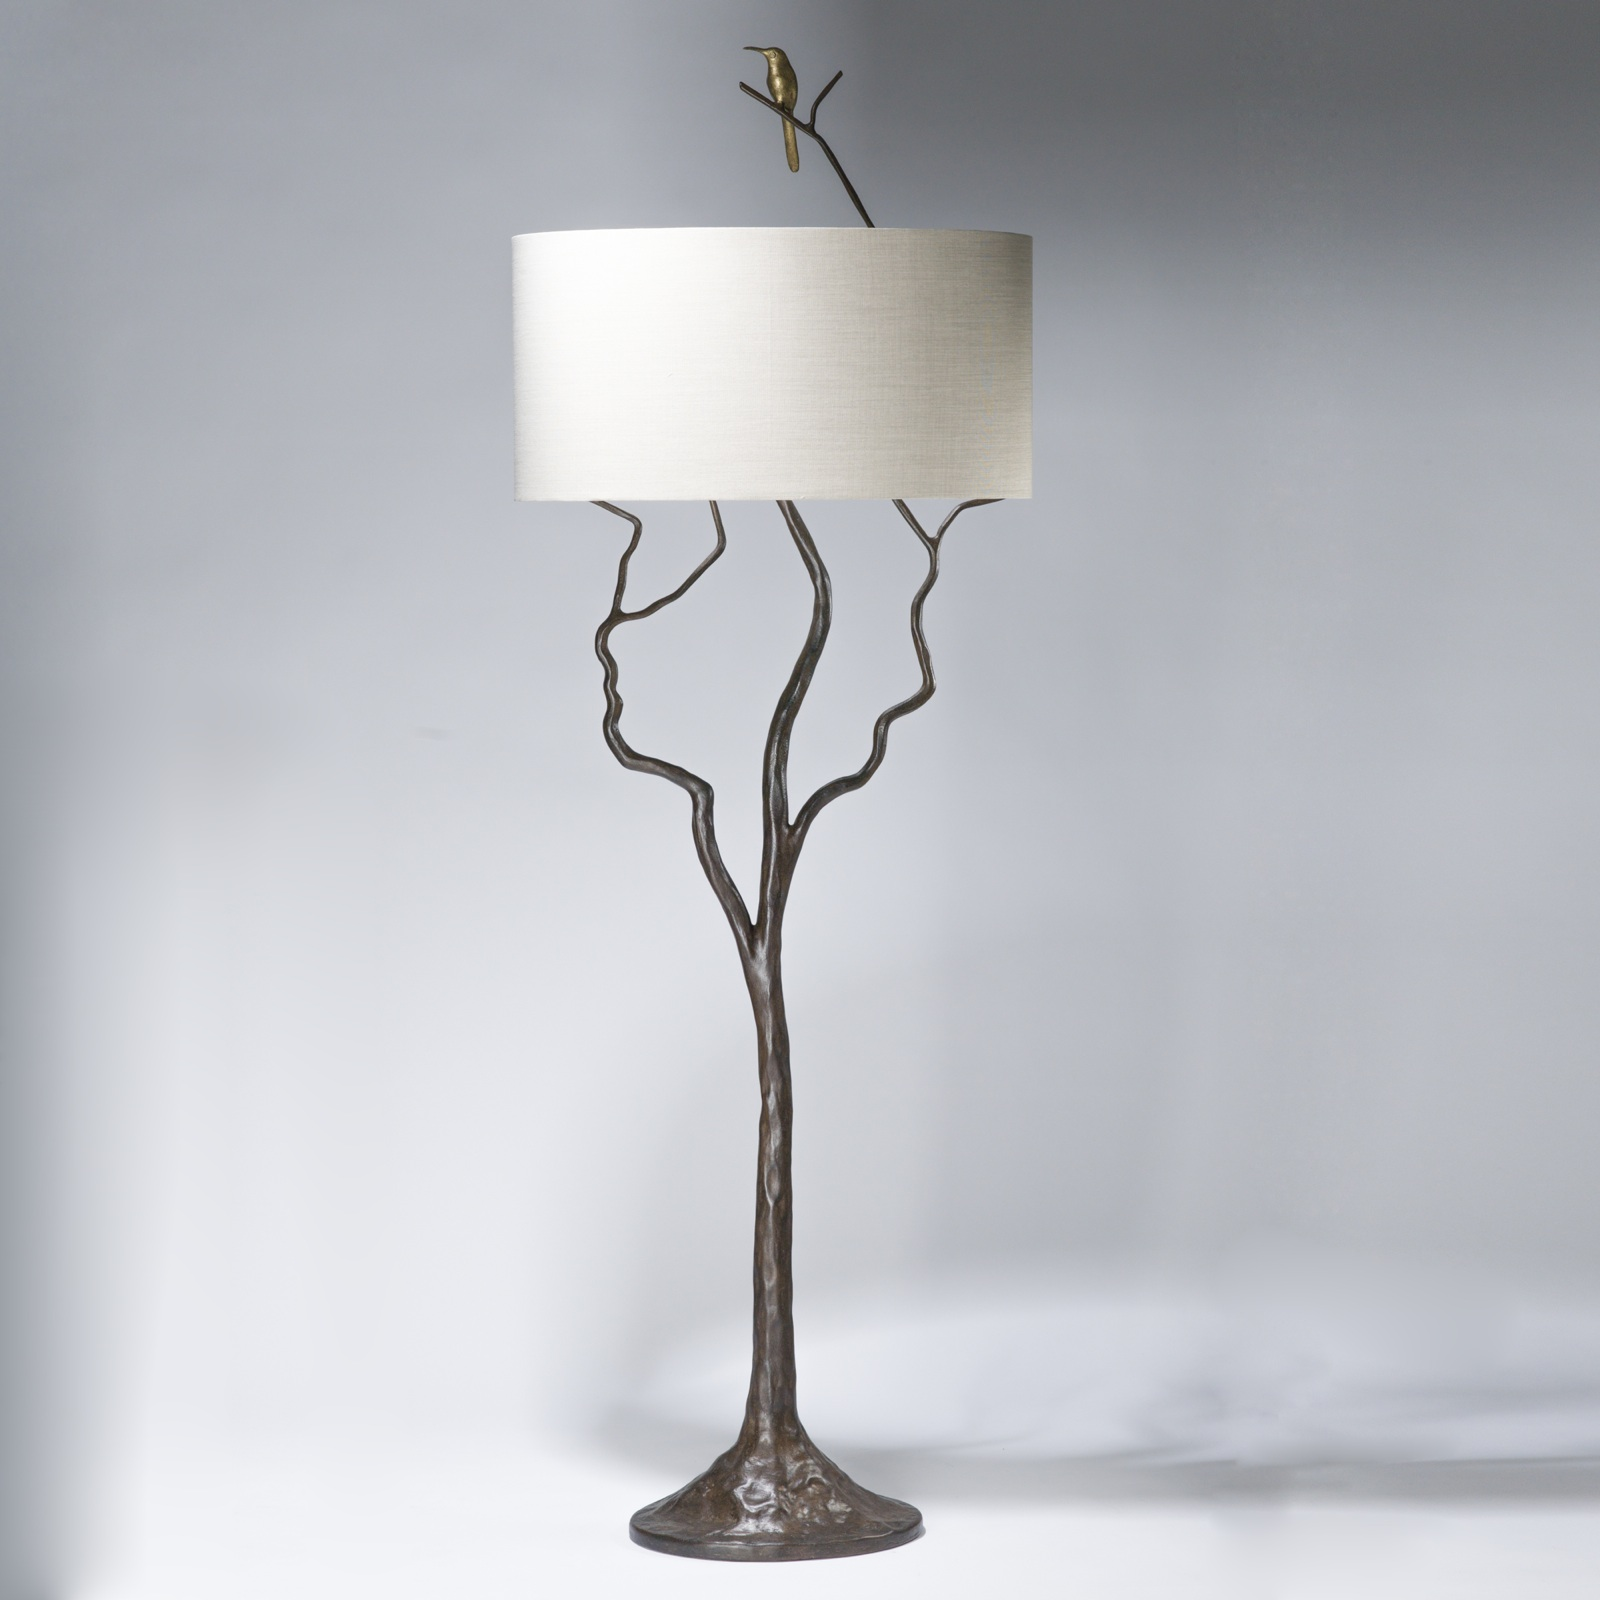 Tall Tree And Humming Bird Floor Lamp In Bronze Distressed Gold Leaf Finish